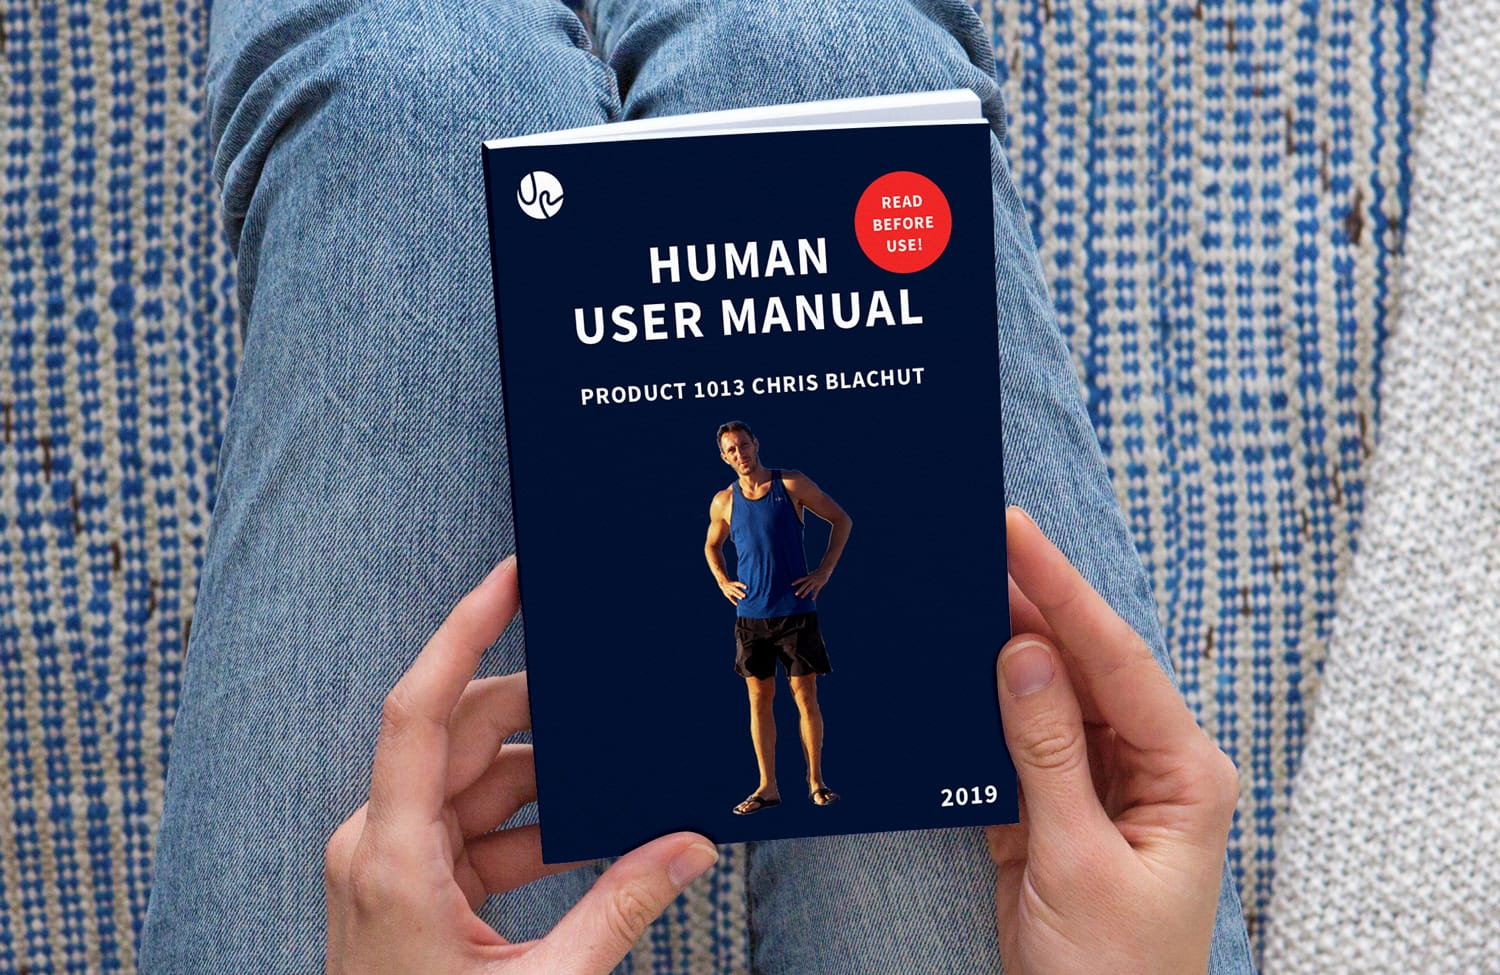 Personal user manual image